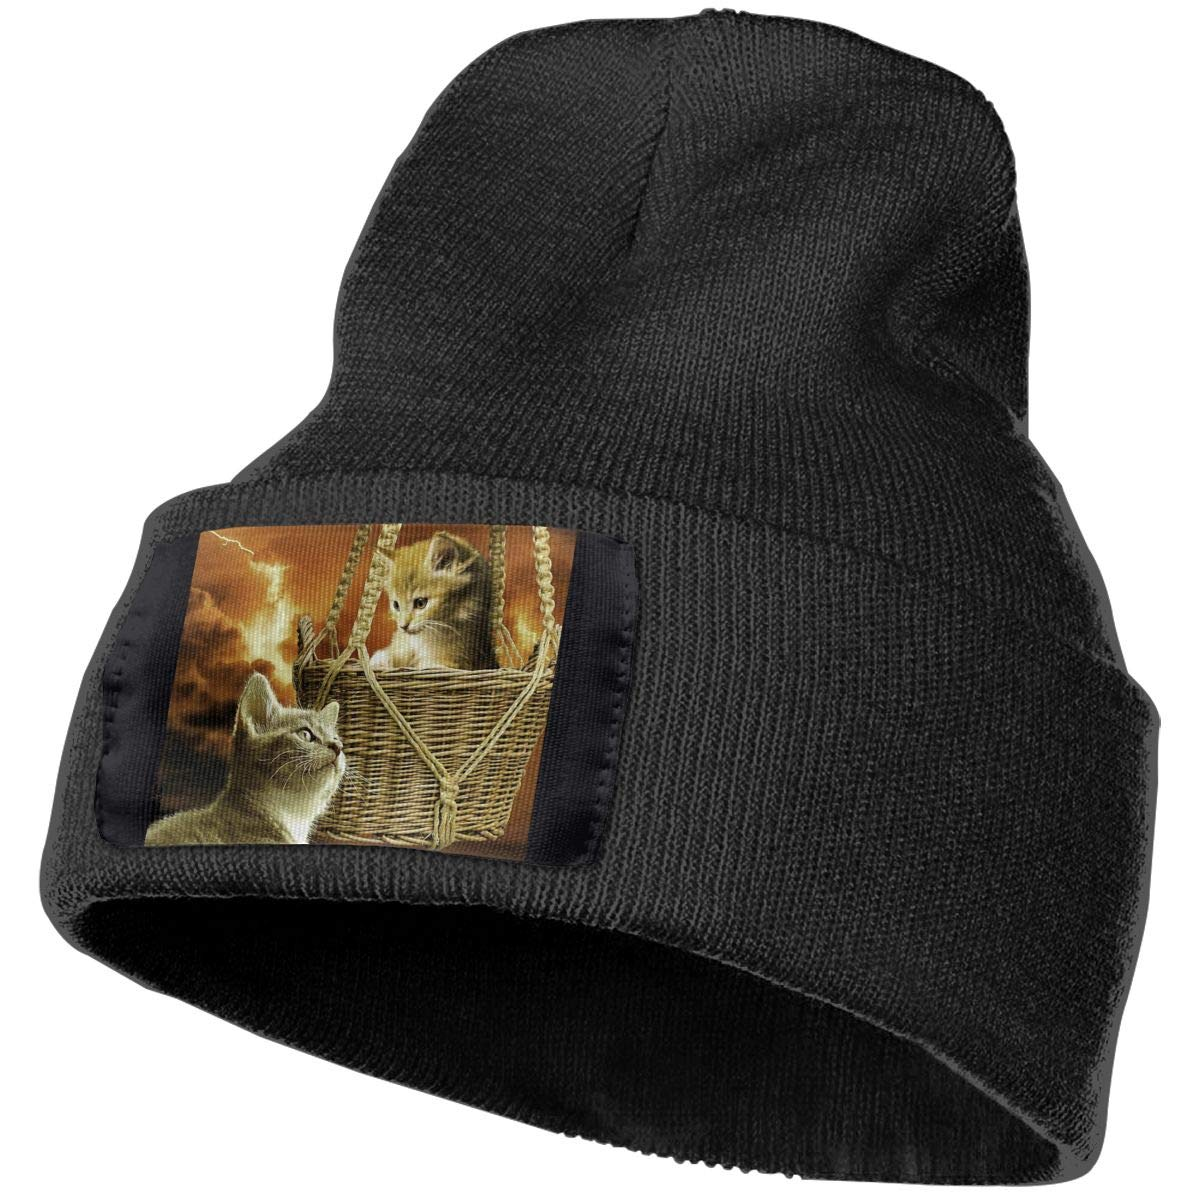 Thunderstorm Cats Beanie Hat Cuffed Slouchy Skull Knitted Cap Stylish